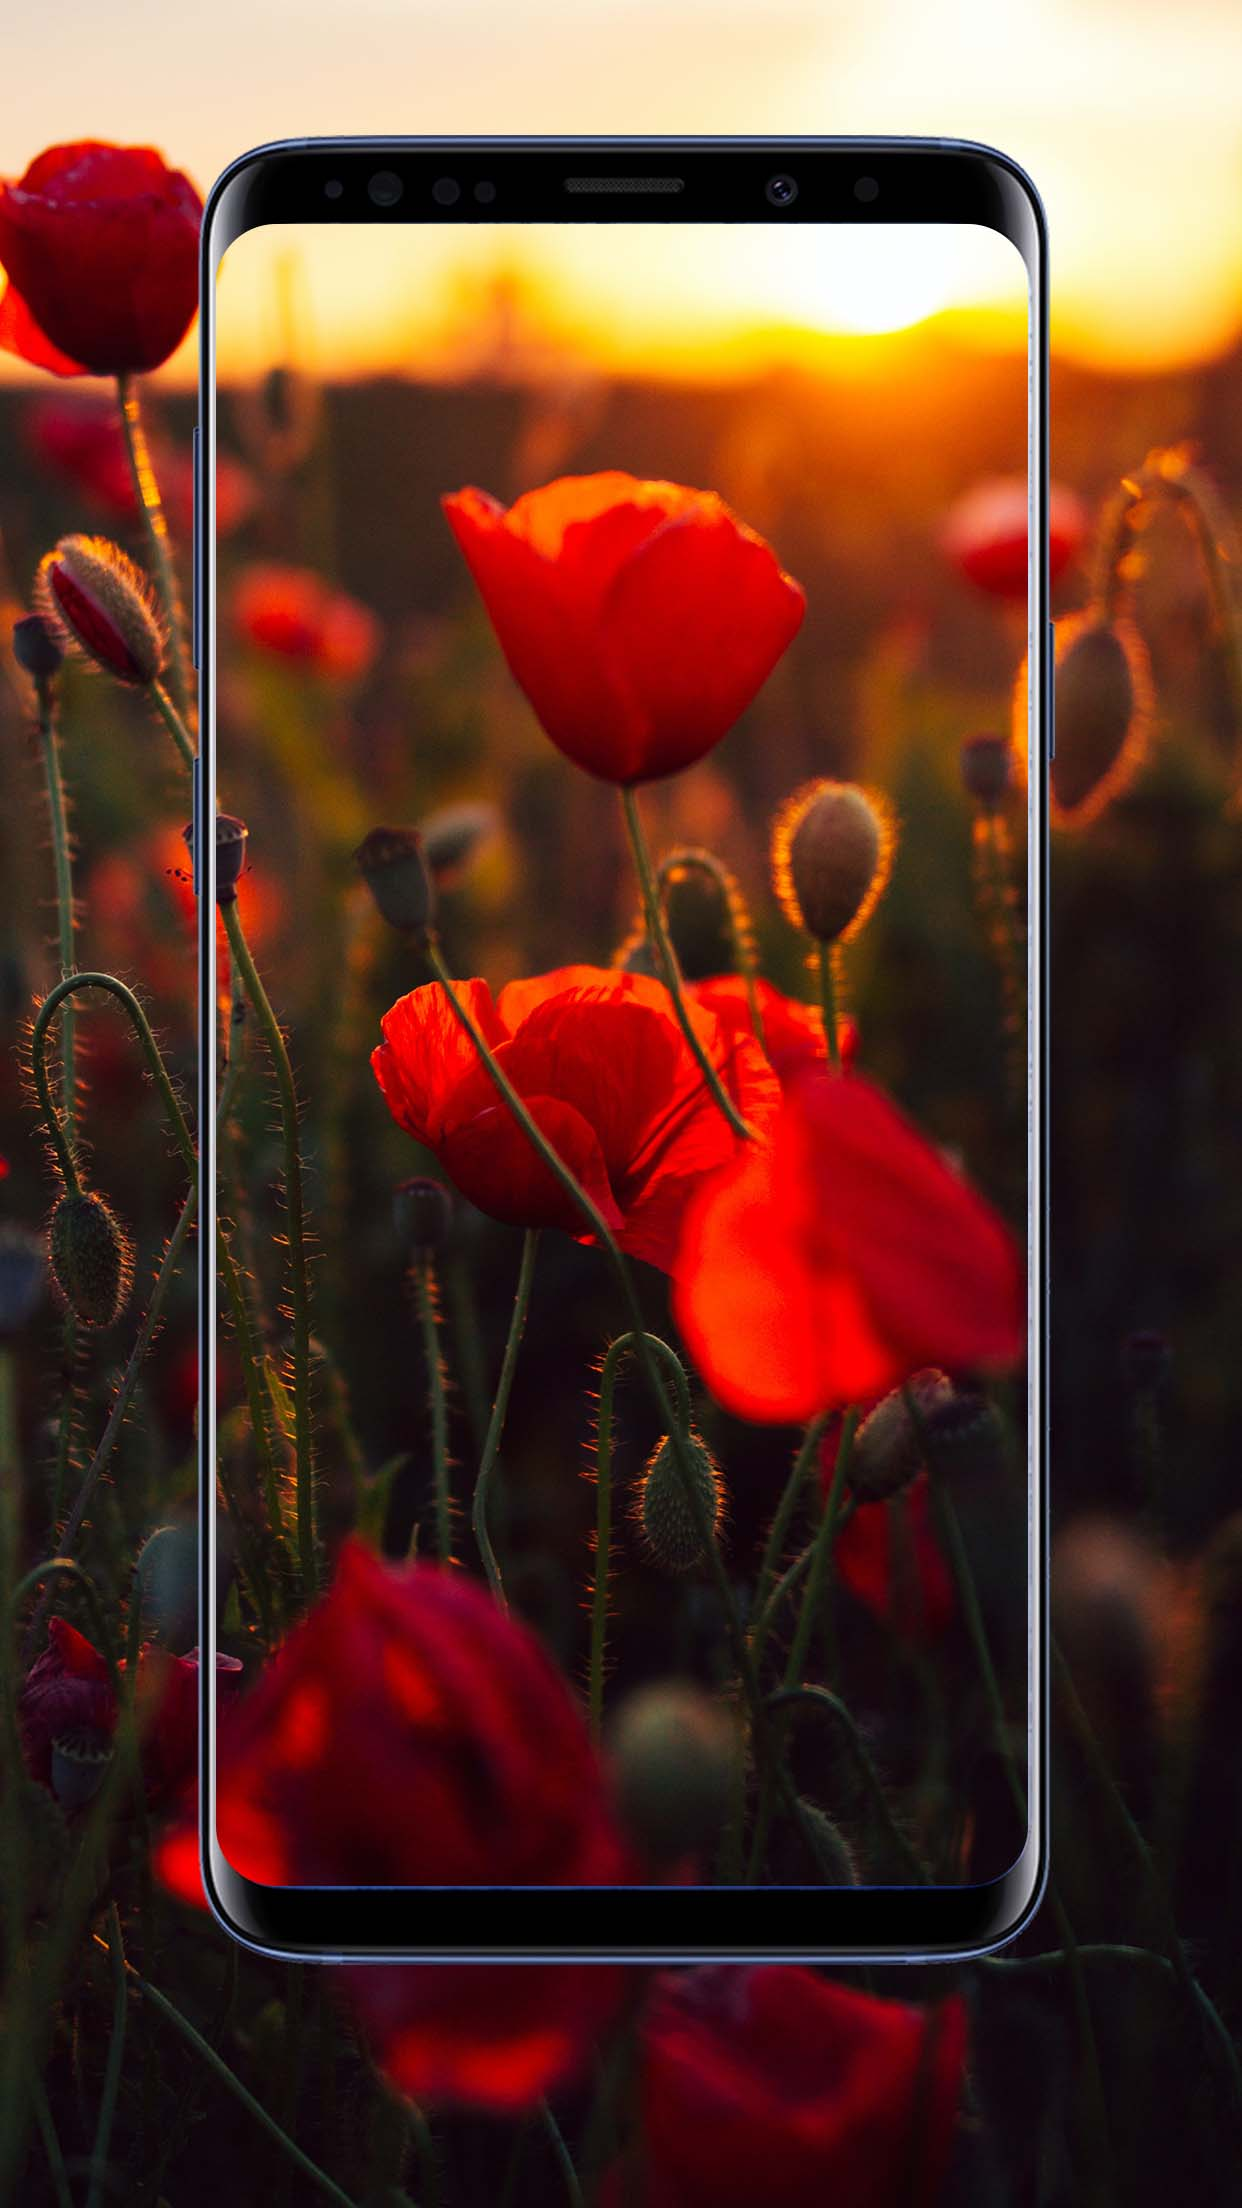 Poppies Flower Wallpapers